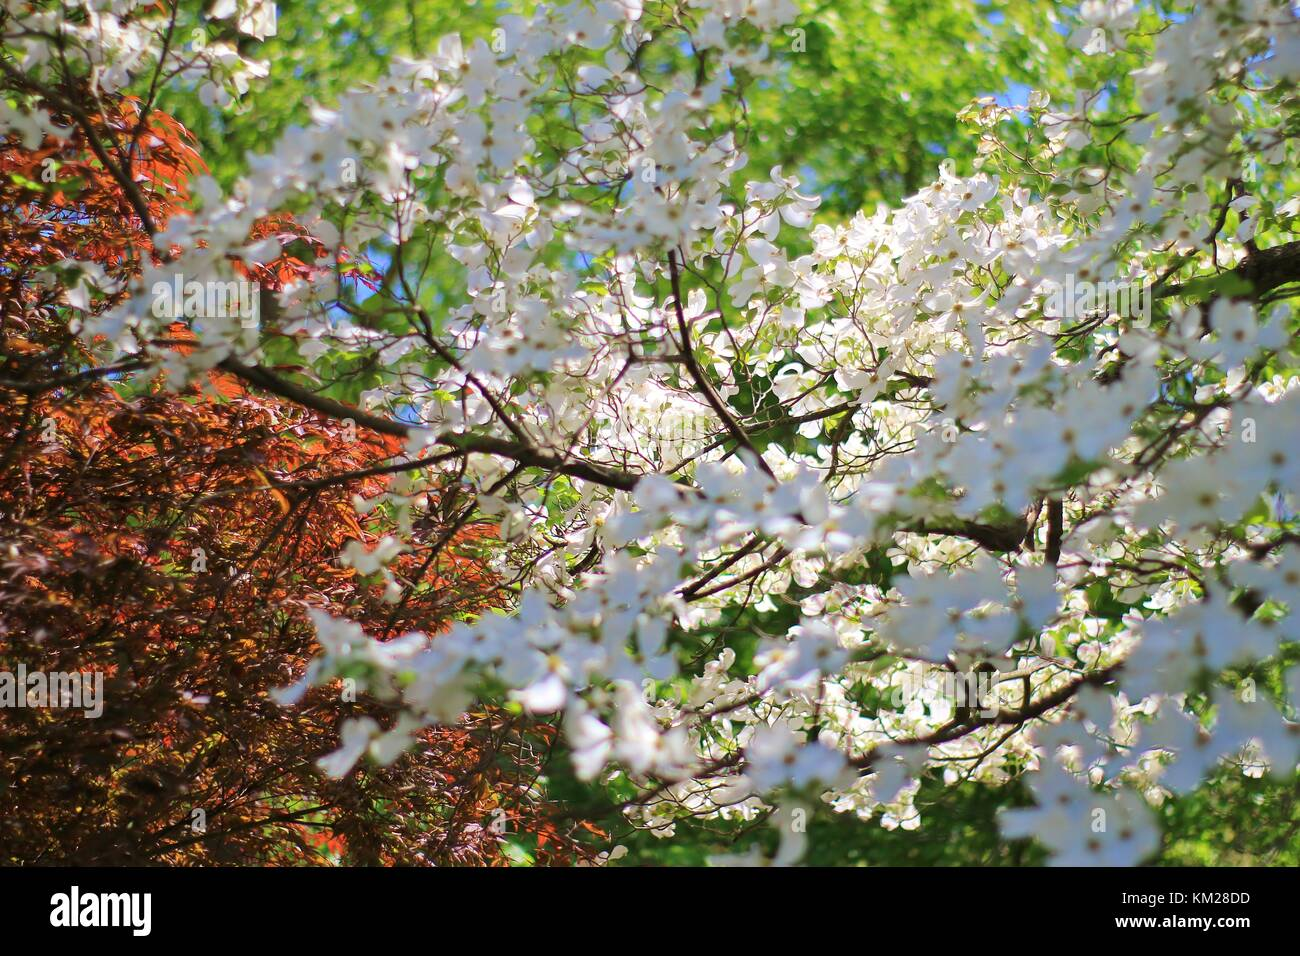 Dogwood Tree In Bloom Stock Photos & Dogwood Tree In Bloom Stock ...